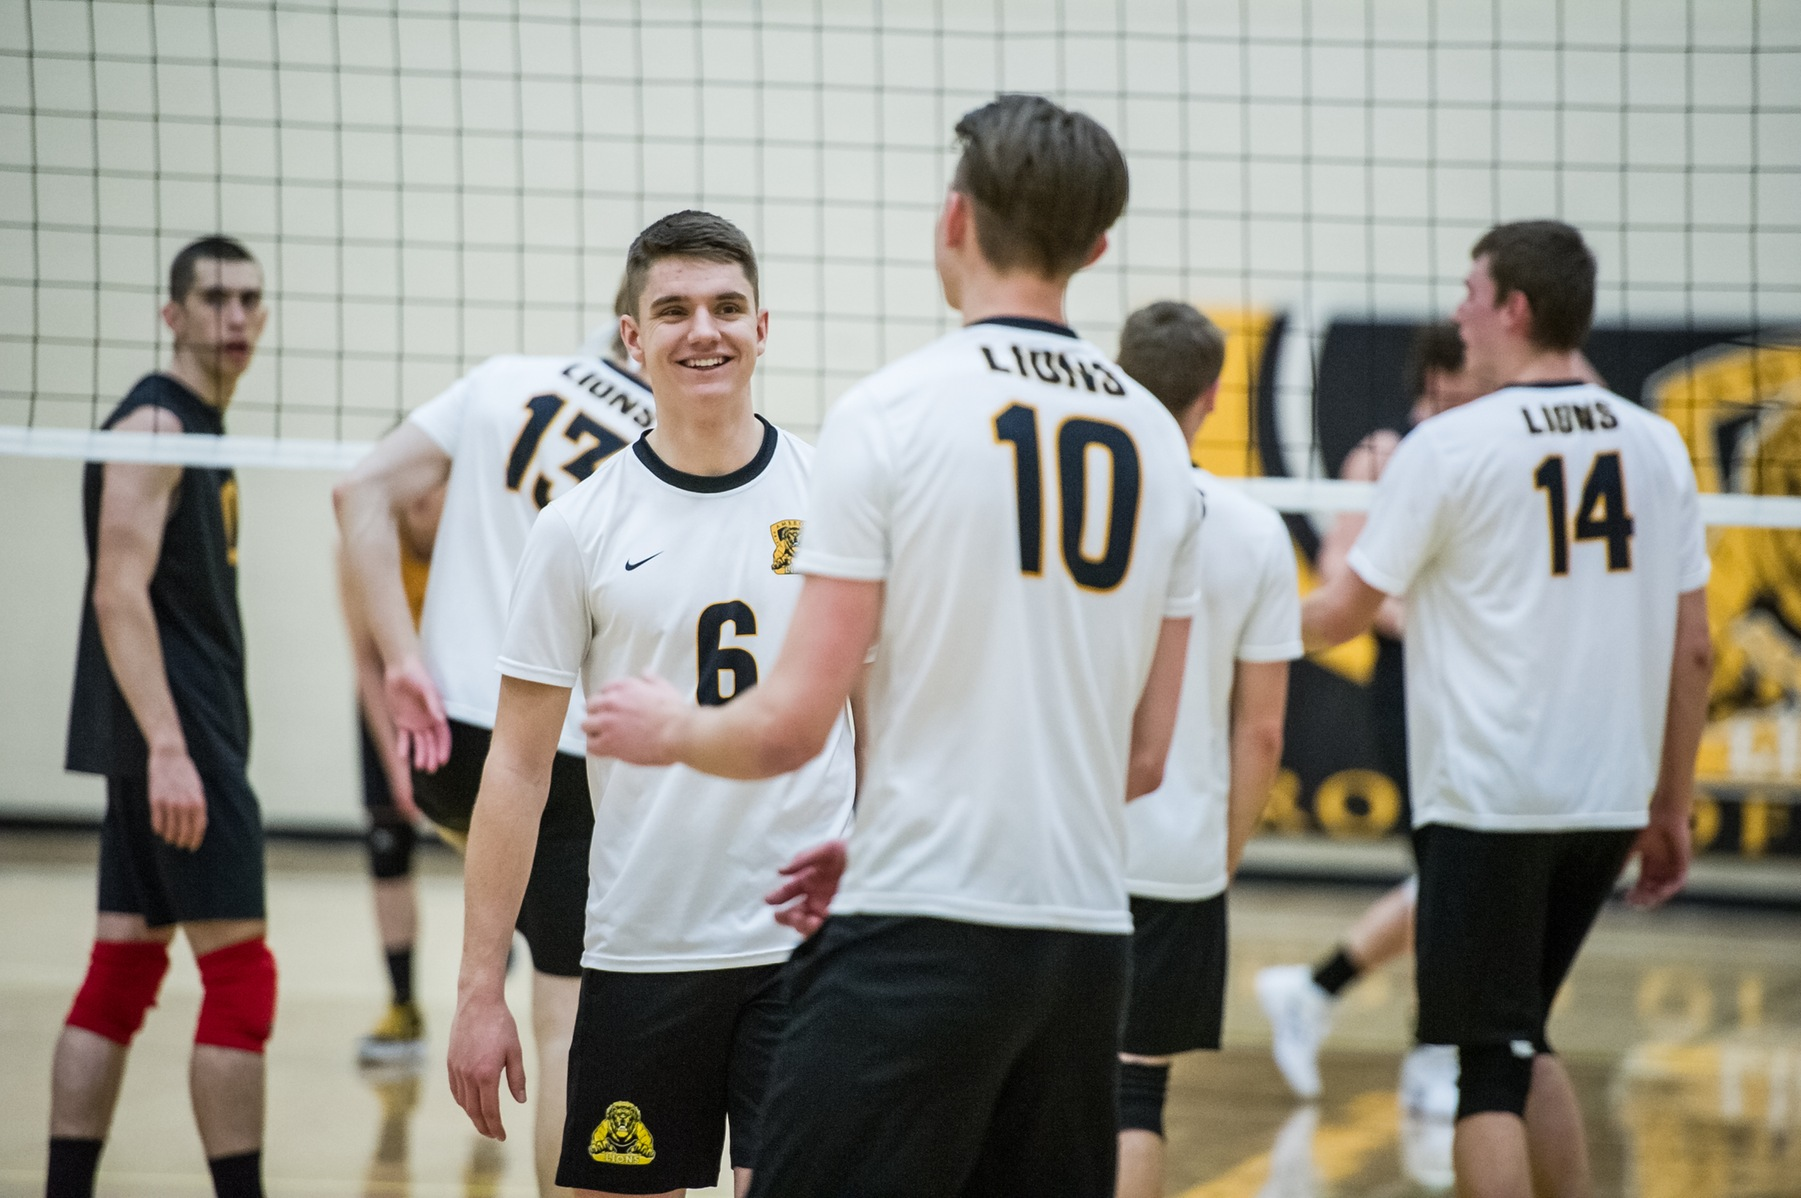 Kodiaks Dominant in Three Set Victory Over Lions